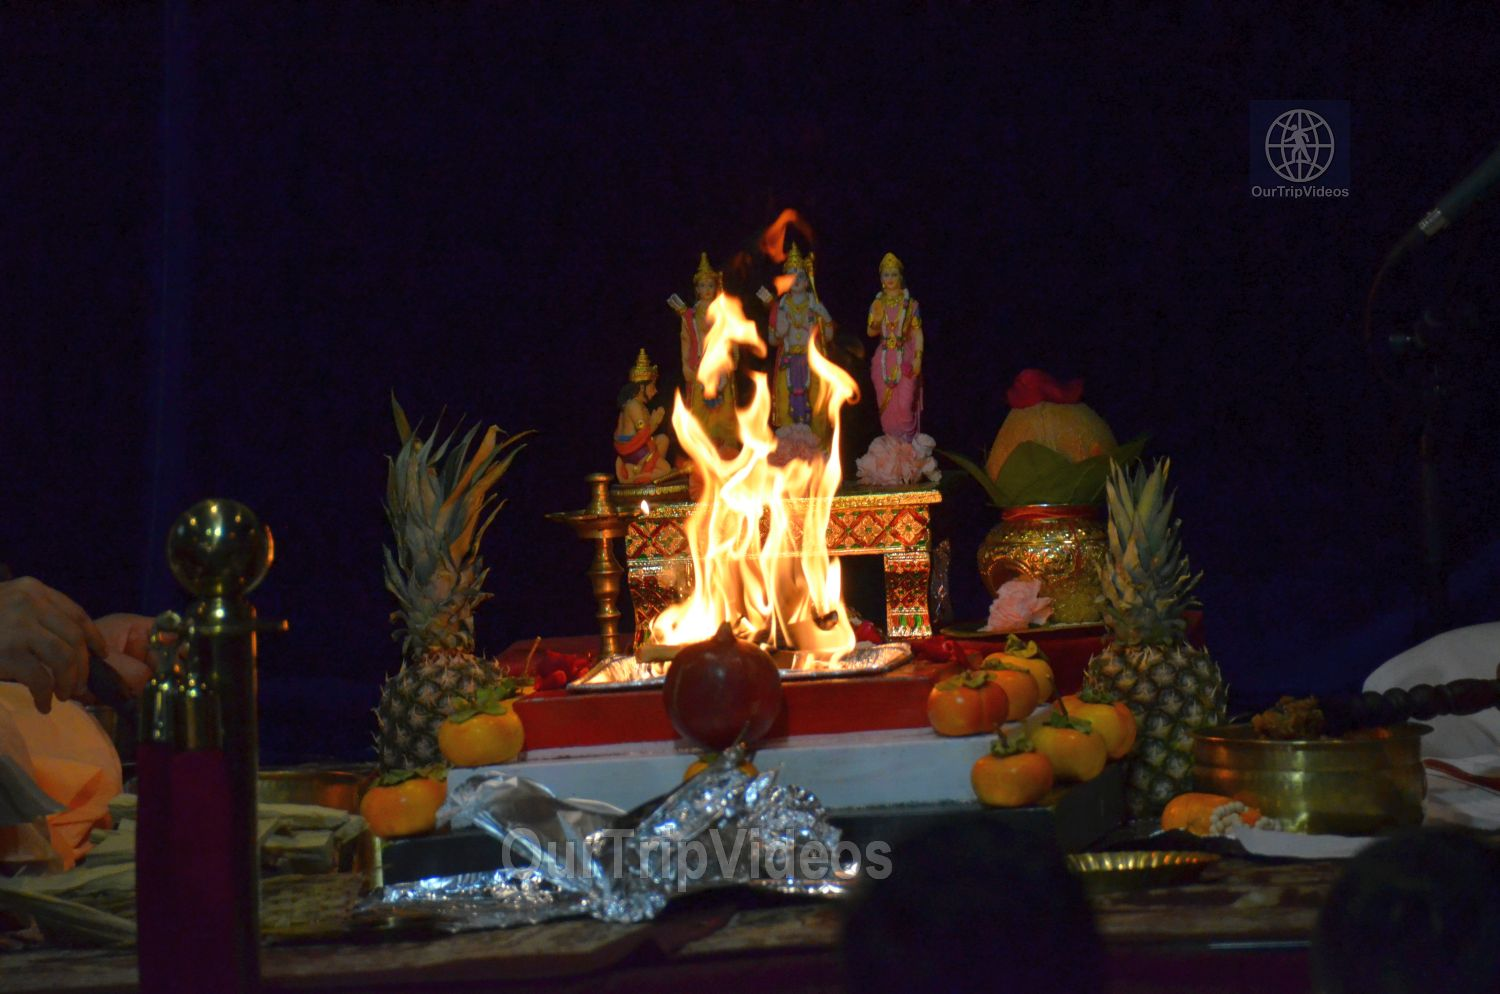 Diwali and Govardhan Puja Celebrations at KBMandir, Sunnyvale, CA, USA - Picture 6 of 25